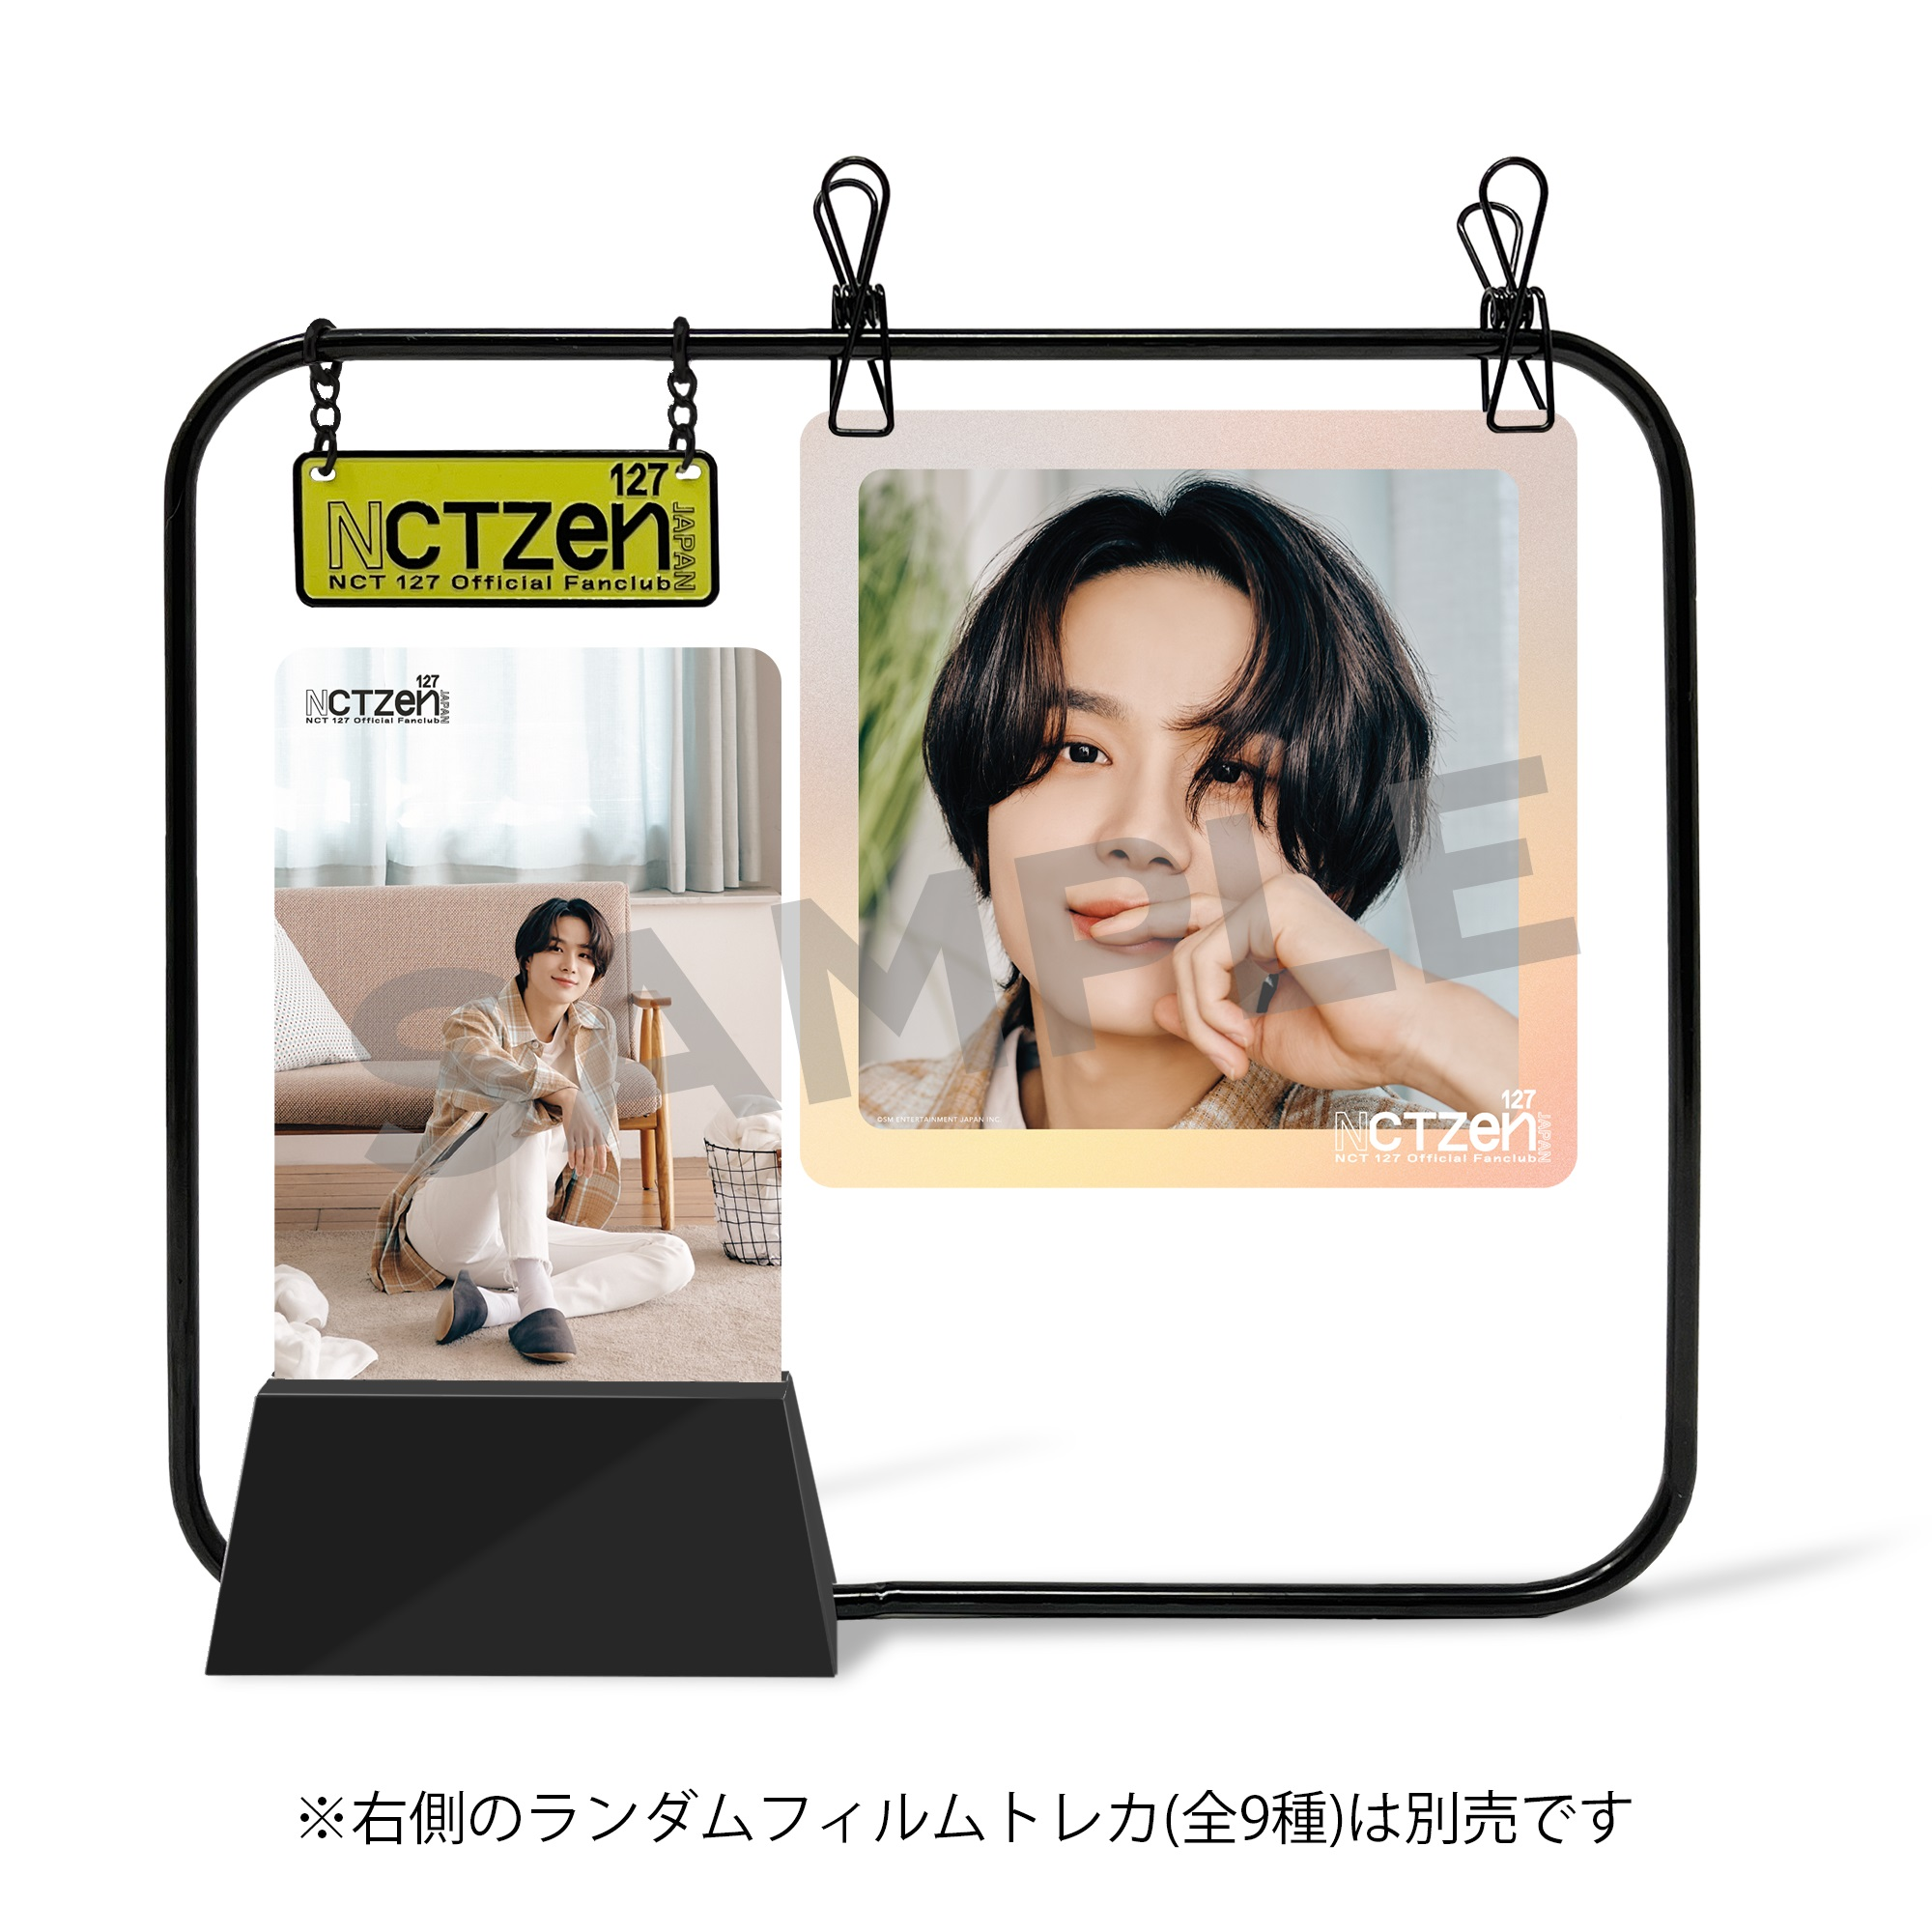 【NCT 127】『NCT 127 OFFICIAL BOOK Vol.4』グッズを、メンバー別に詳しく紹介!_8_3